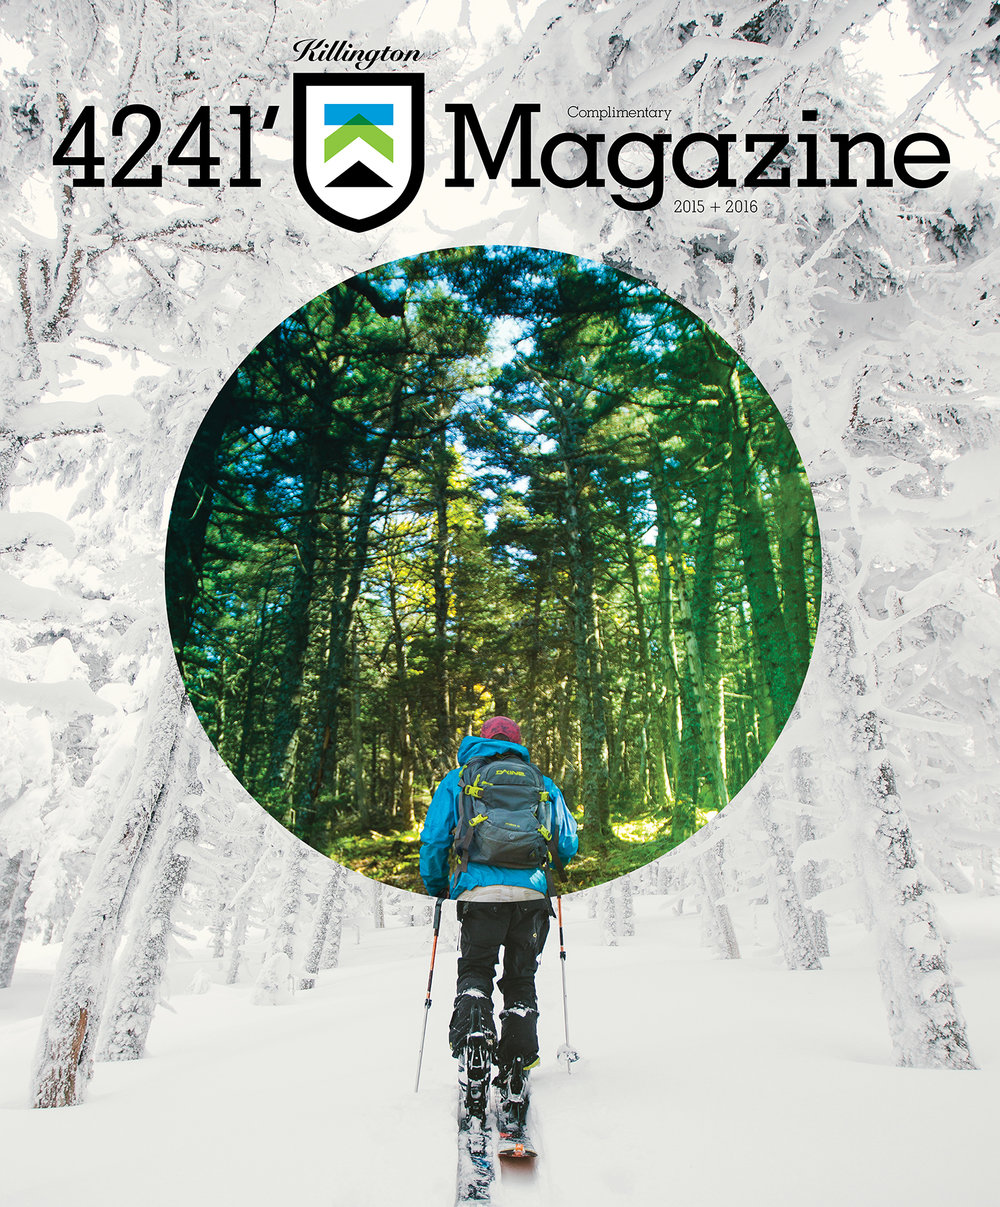 FEATURED WORK  KILLINGTON  4241' MAGAZINE , VOL 5